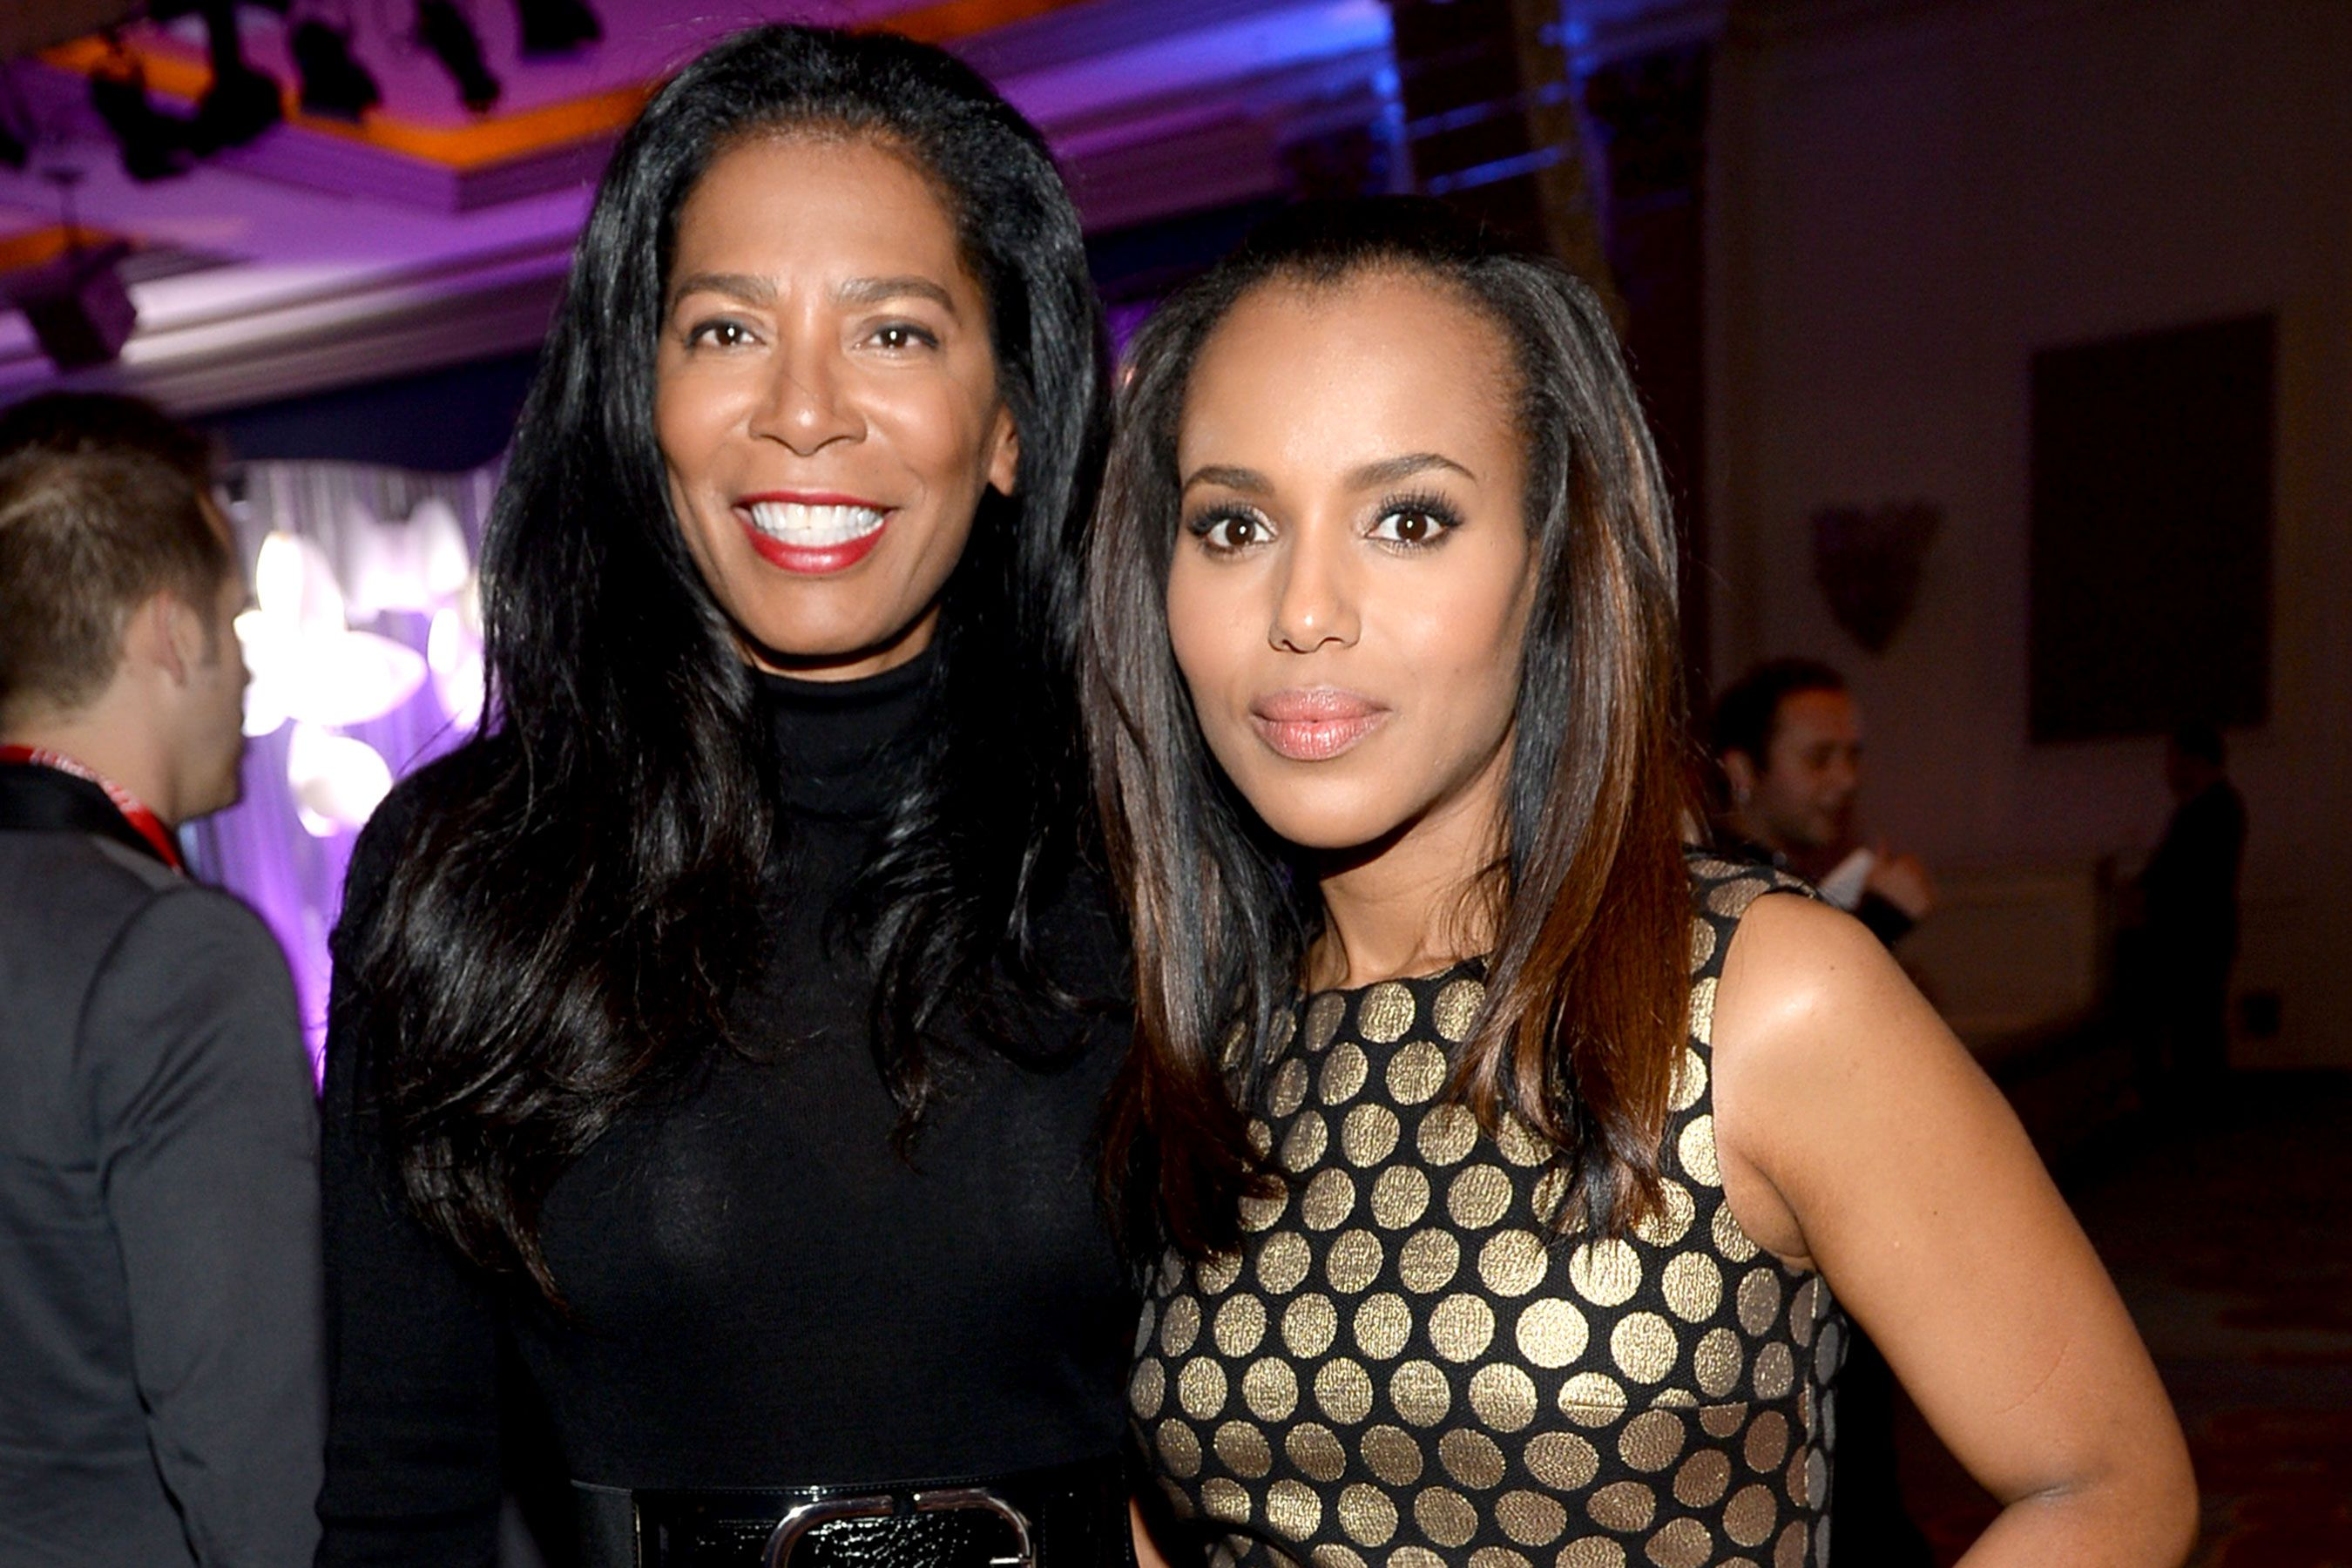 Kerry Washington Shares Photo From Scandal Wrap Party With Og Olivia Pope Olivia Pope Scandal Kerry Washington Scandal